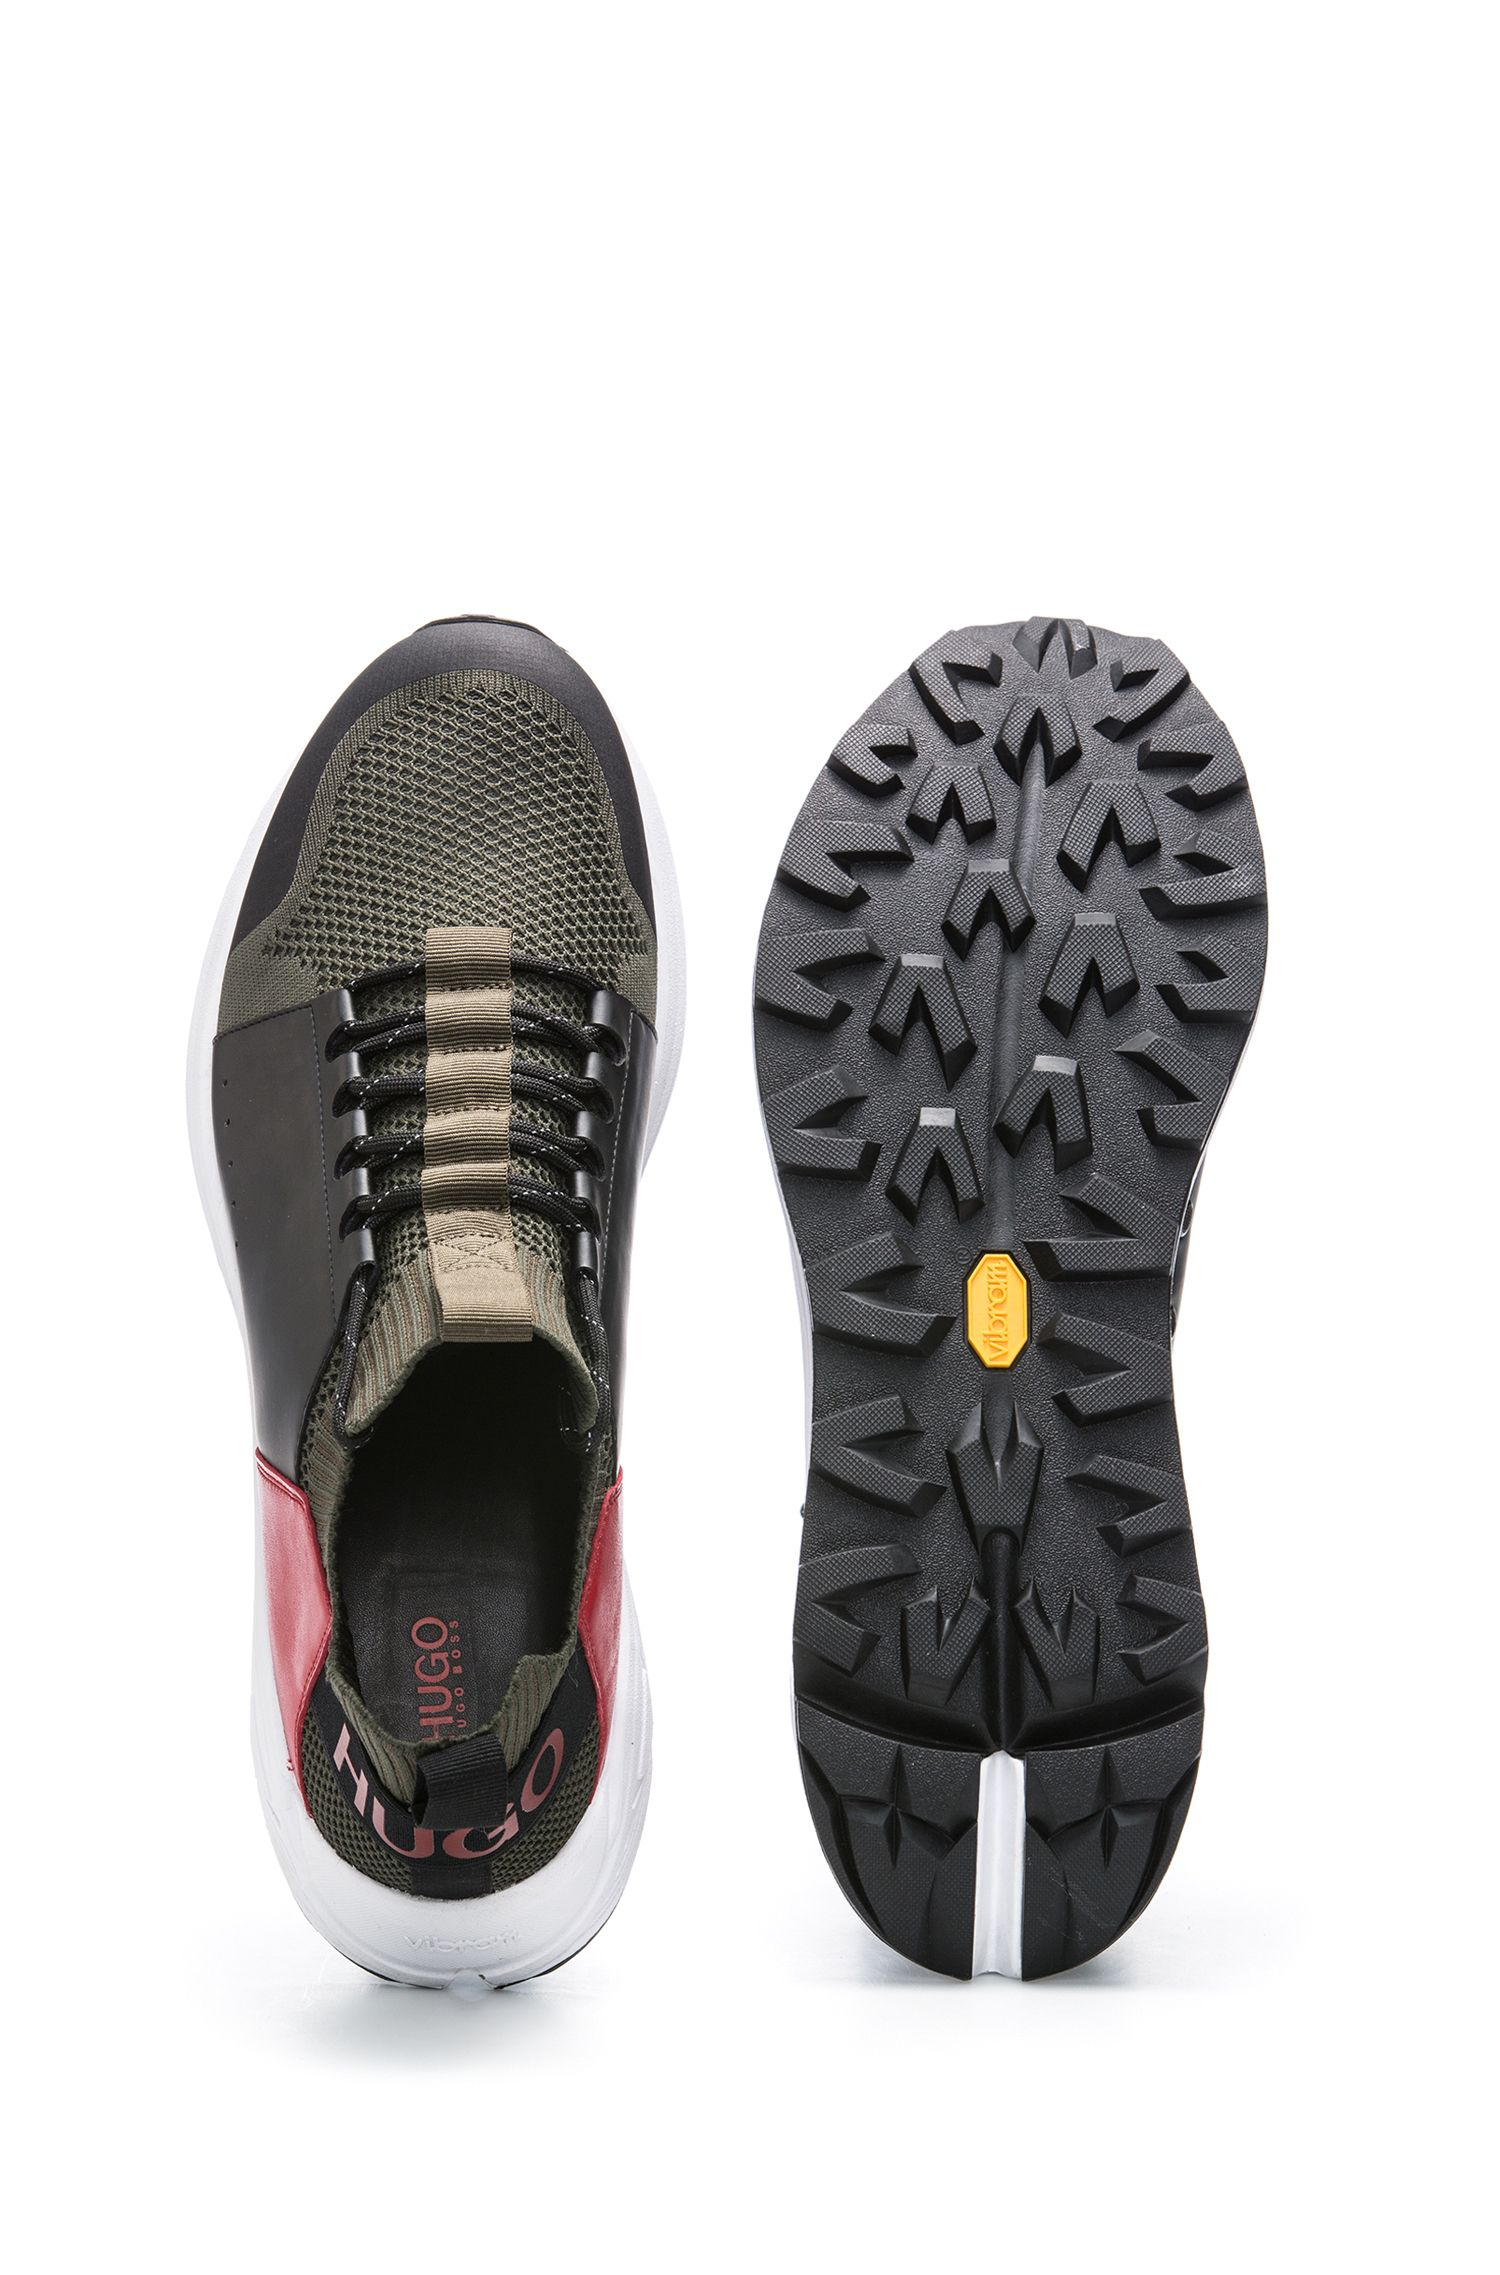 Modern lace-up trainers with thick Vibram sole, Green